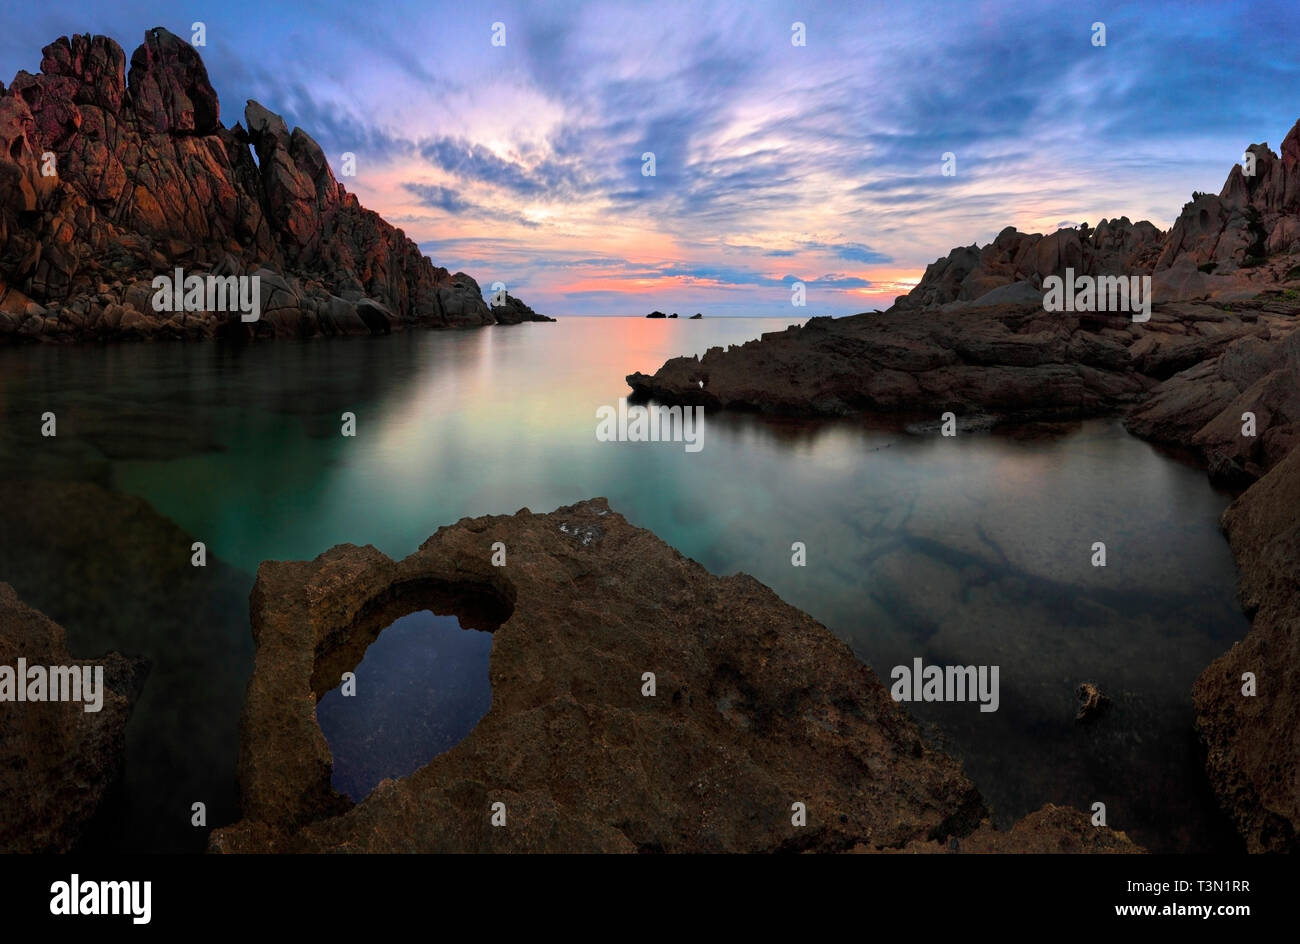 Cala Grande, one of the many small bays of the amazing rocky promontory known as Capo Testa, just off Santa Teresa di Gallura in Sardinia, Italy. Take - Stock Image